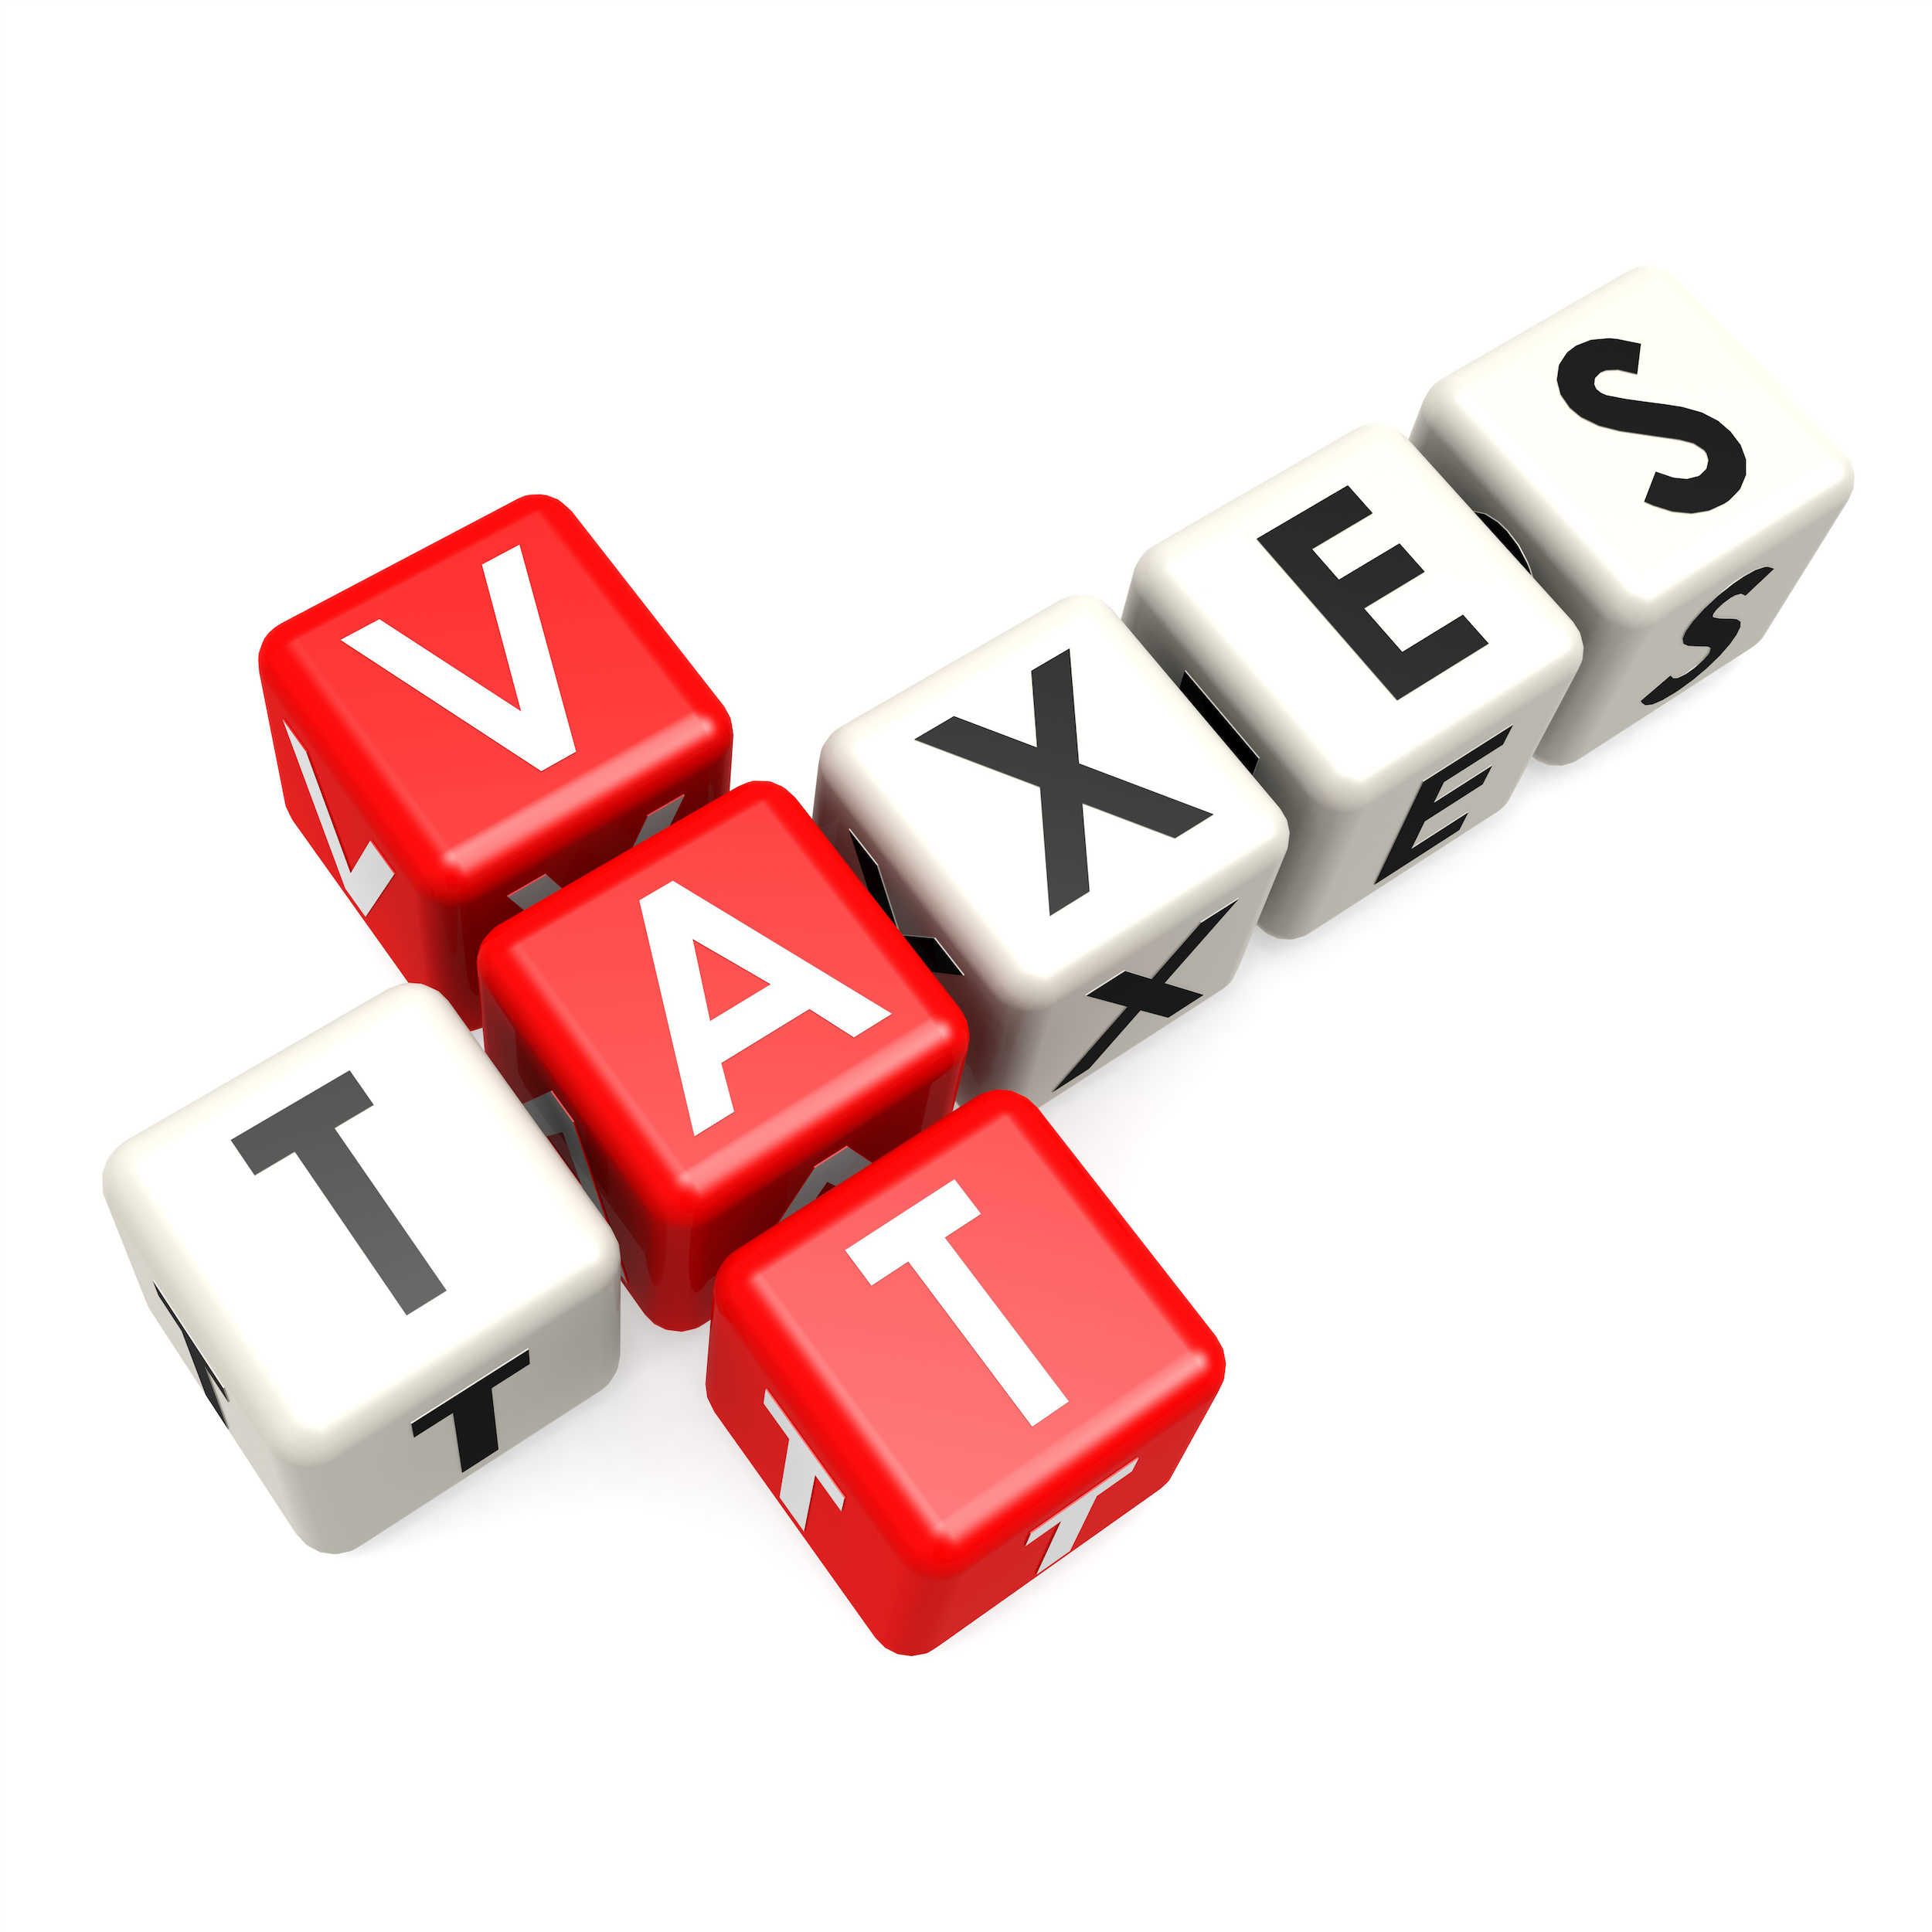 Vat and taxes